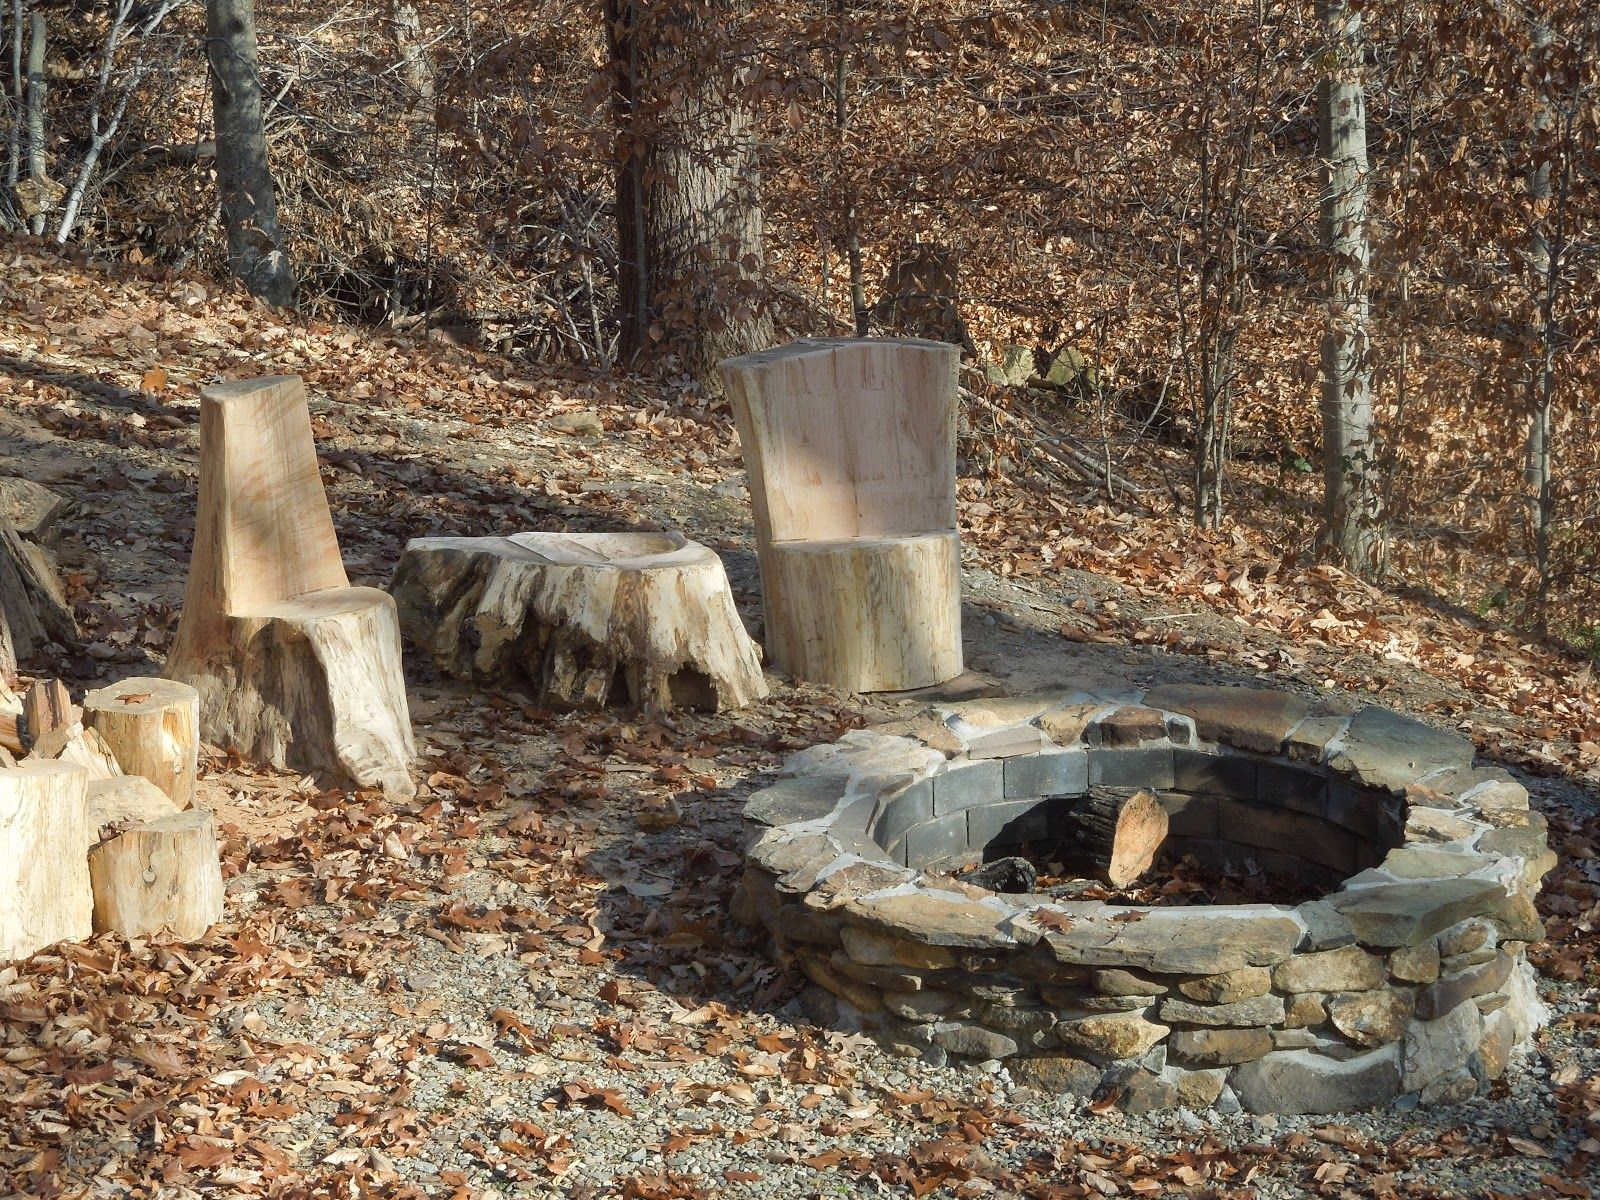 Cool Fire Pit Ideas: Another Cool Rustic Fire Pit Design